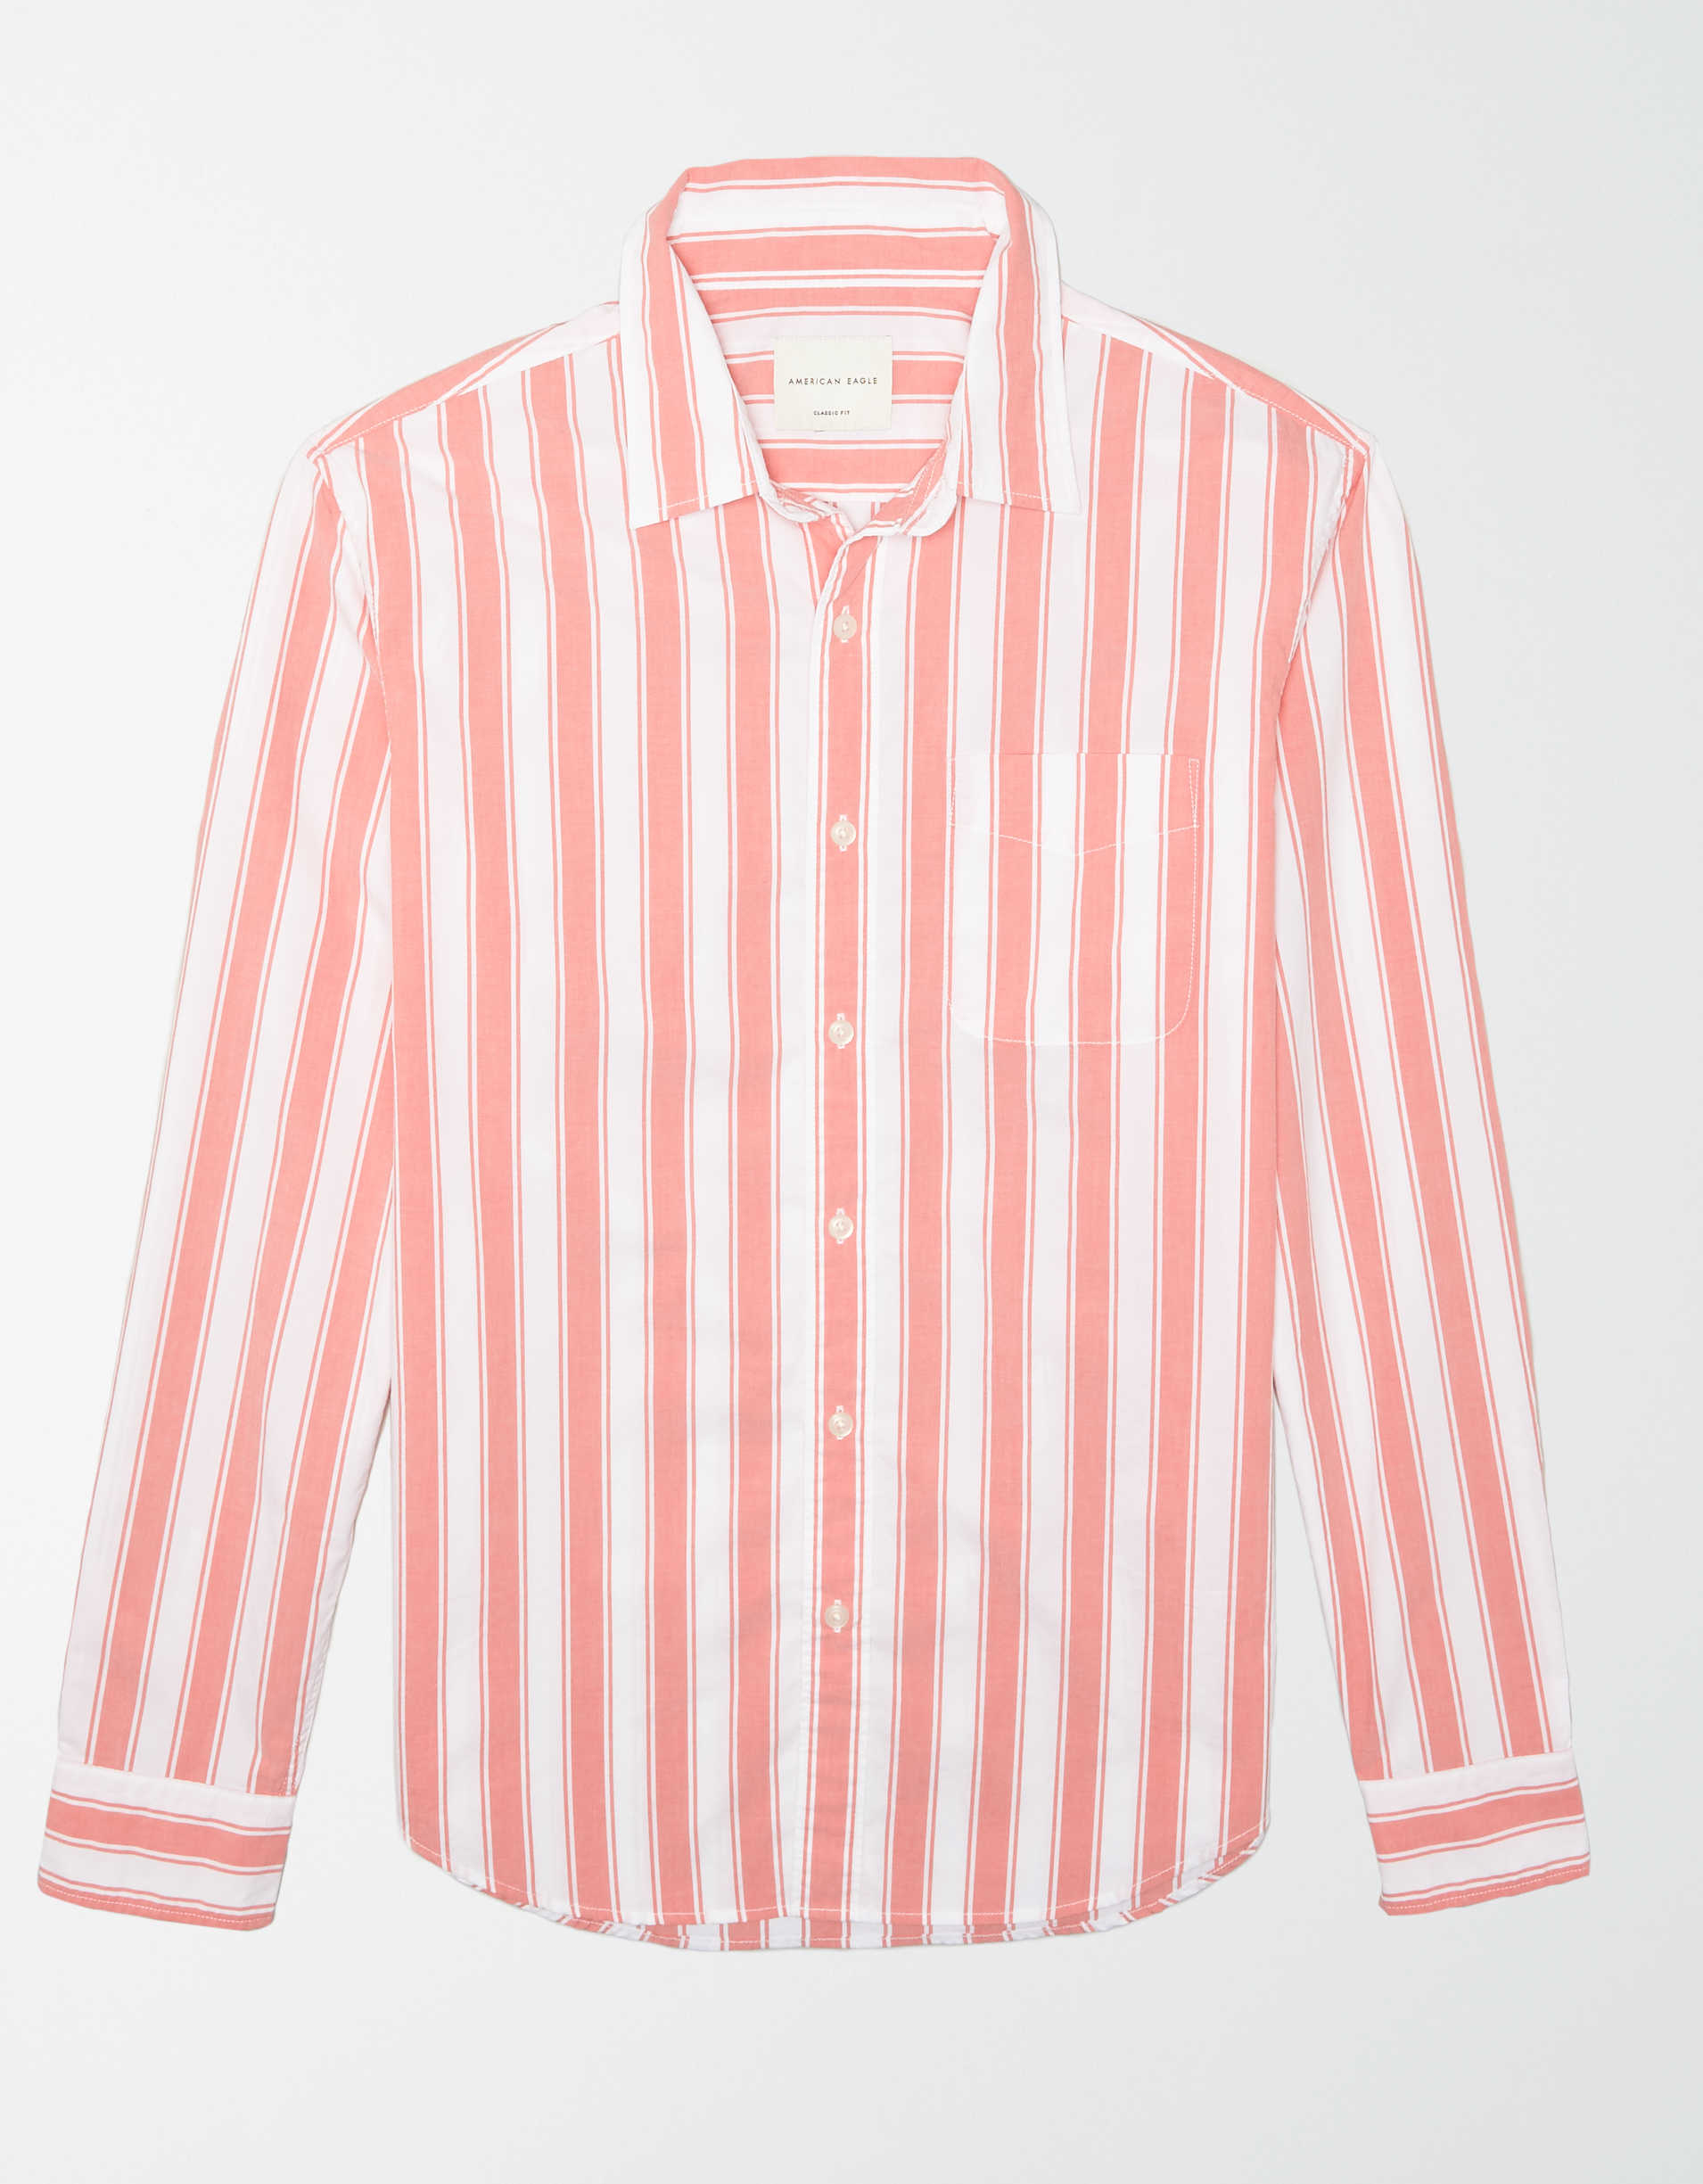 AE Striped Poplin Button-Up Shirt